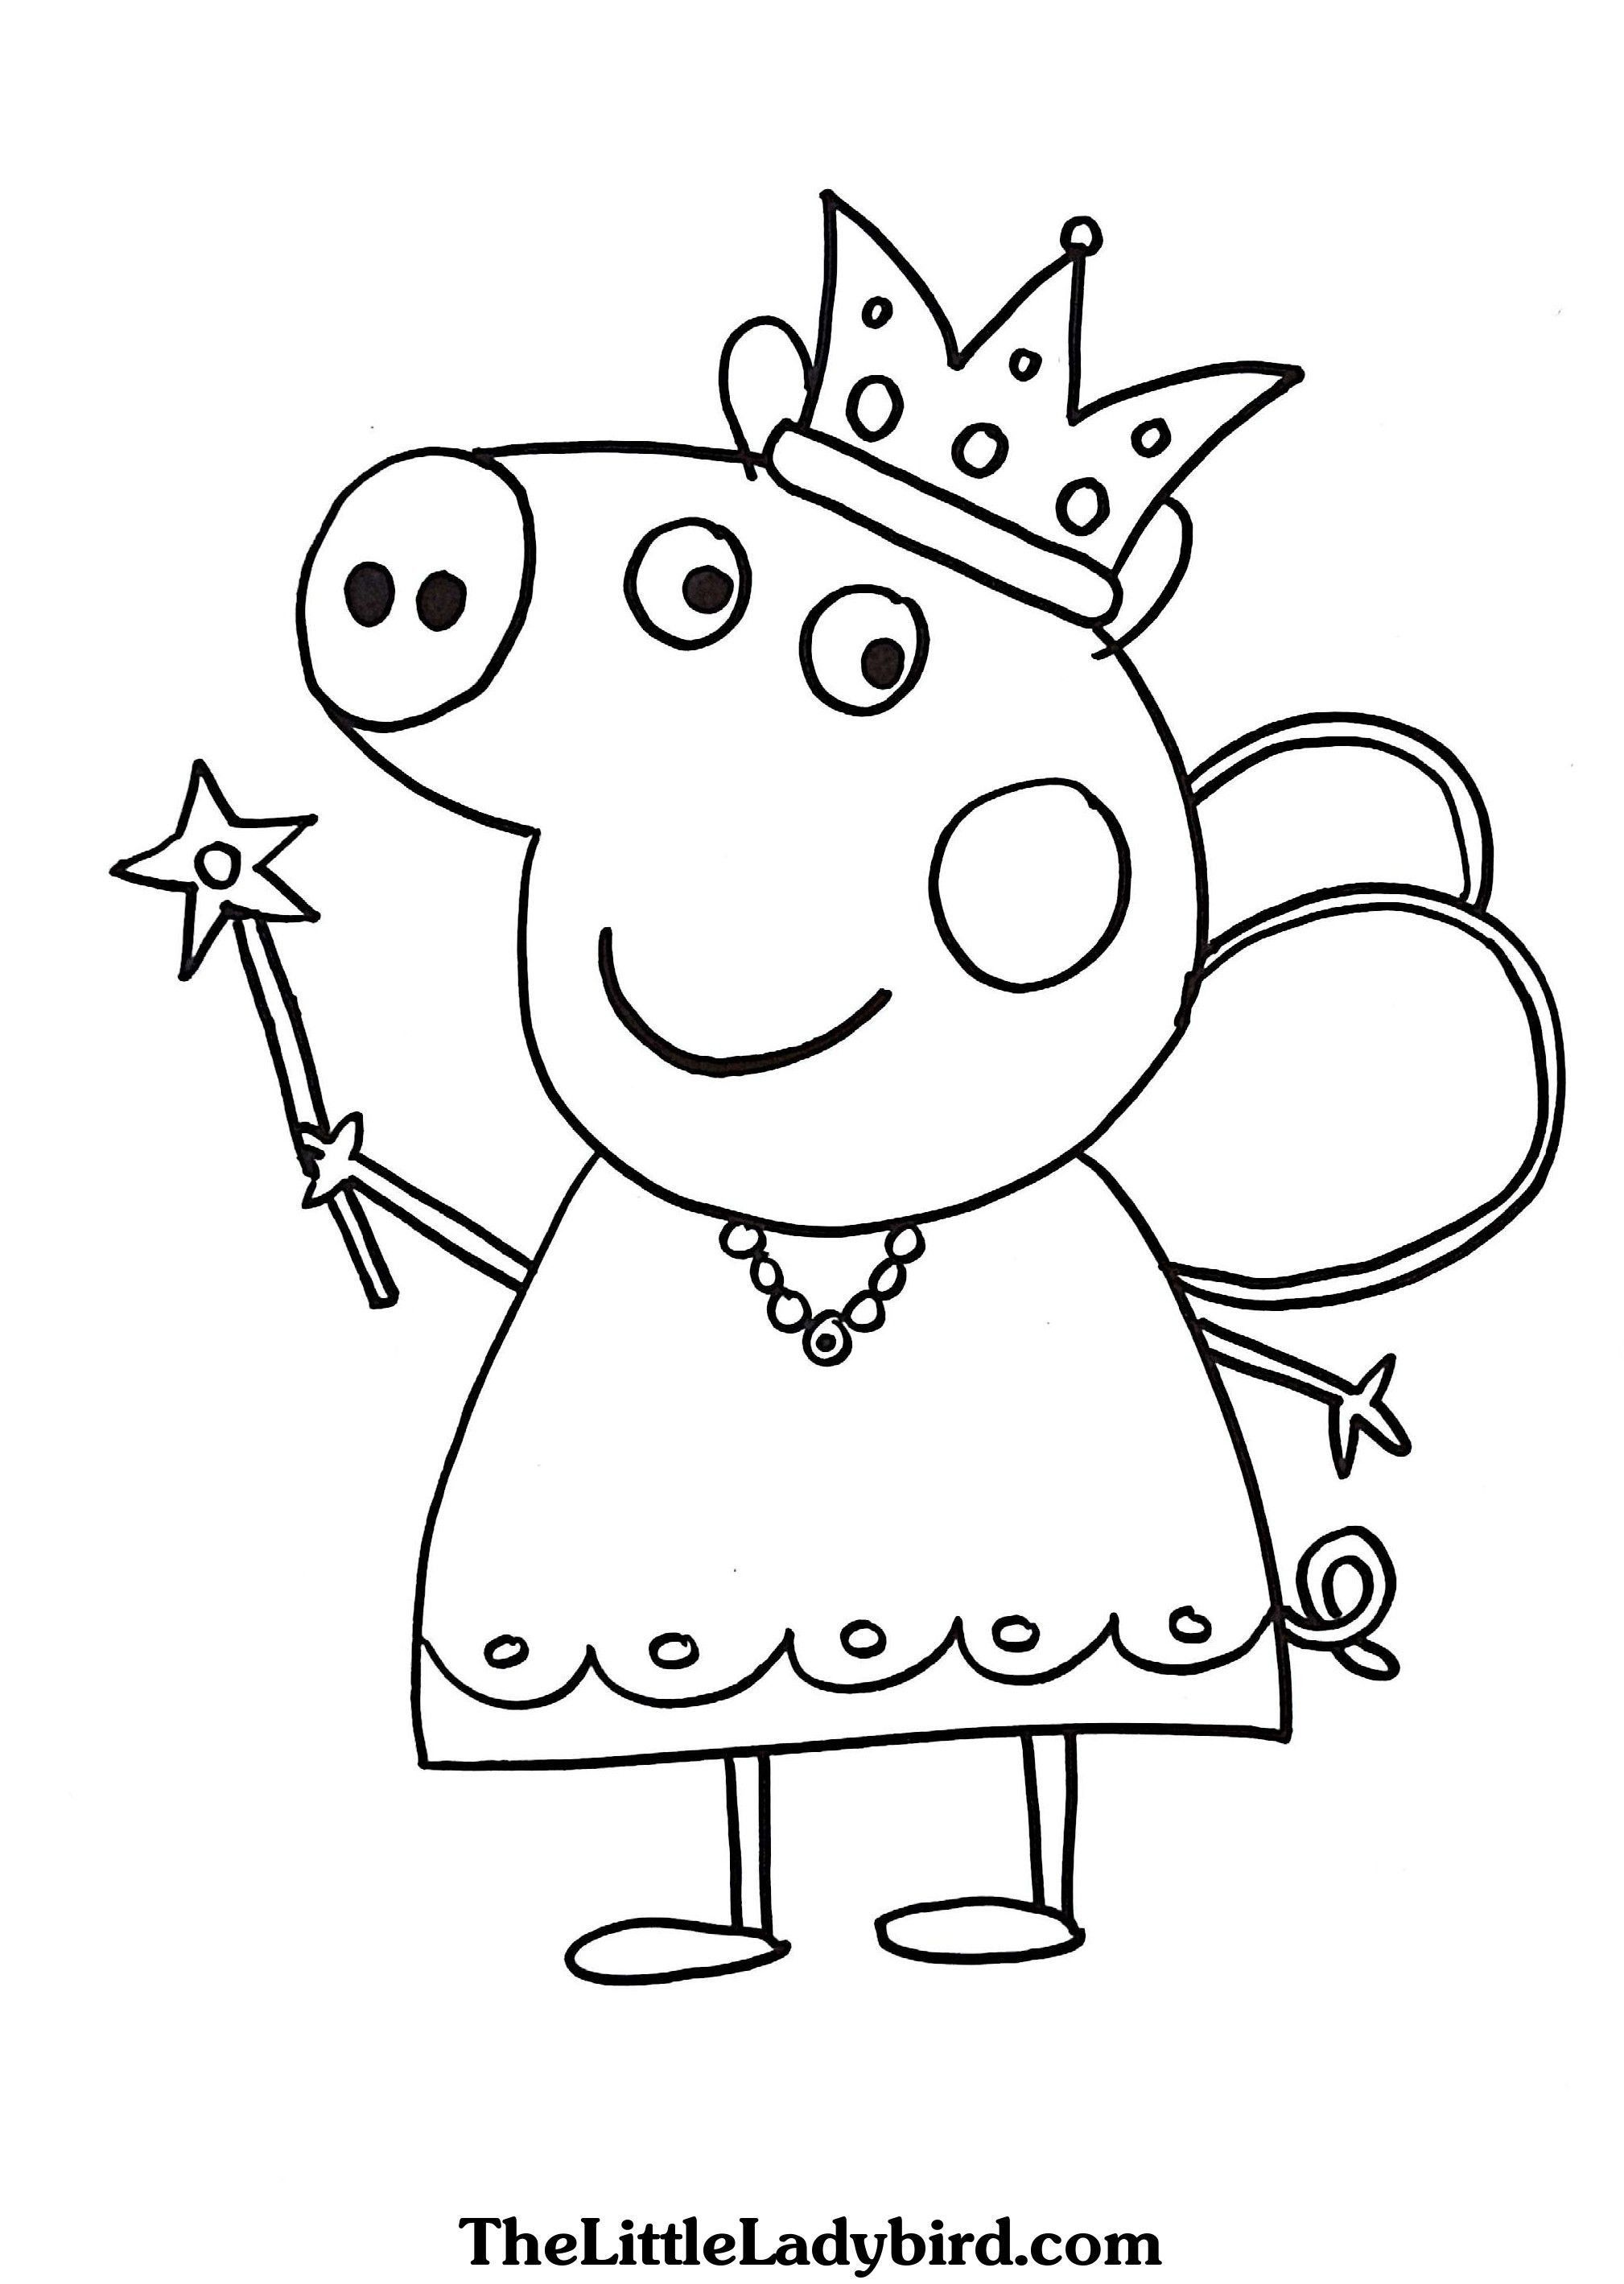 Peppa Pig Coloring Pages Momjunction Through The Thousands Of Photographs On The Net Abou Peppa Pig Coloring Pages Peppa Pig Colouring Cartoon Coloring Pages